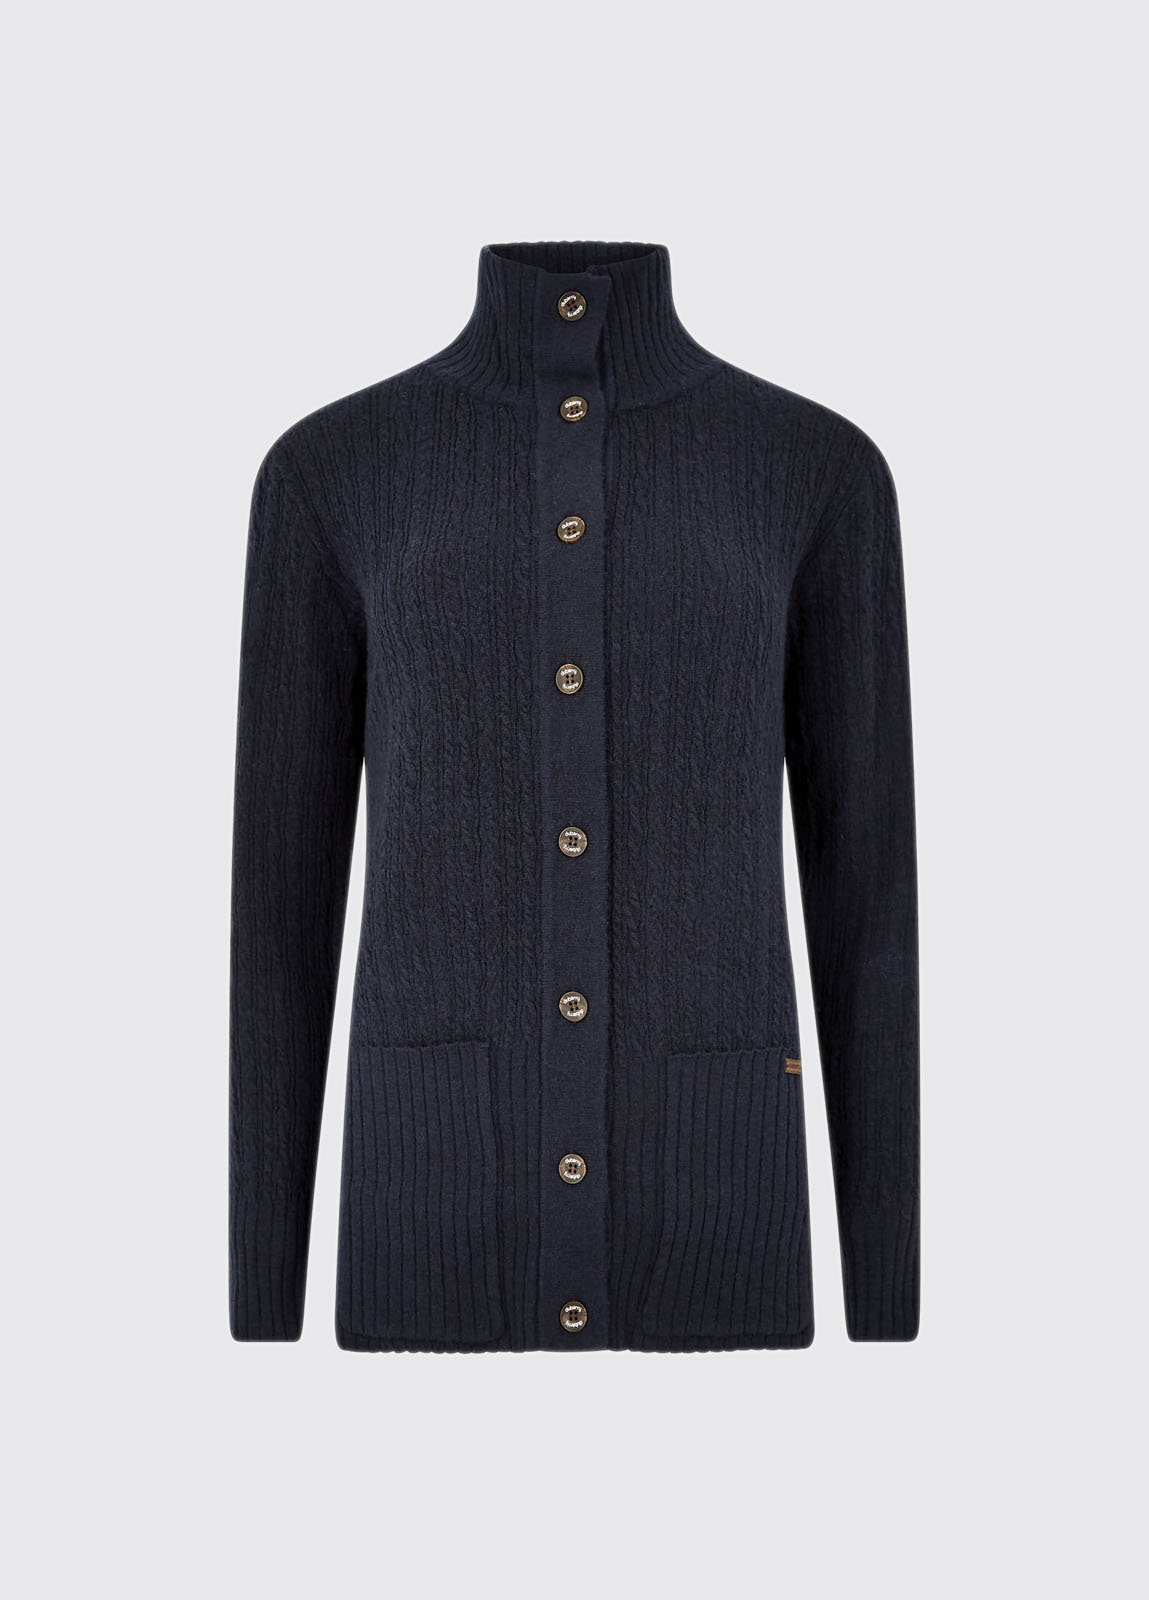 Crofton Cardigan - Navy